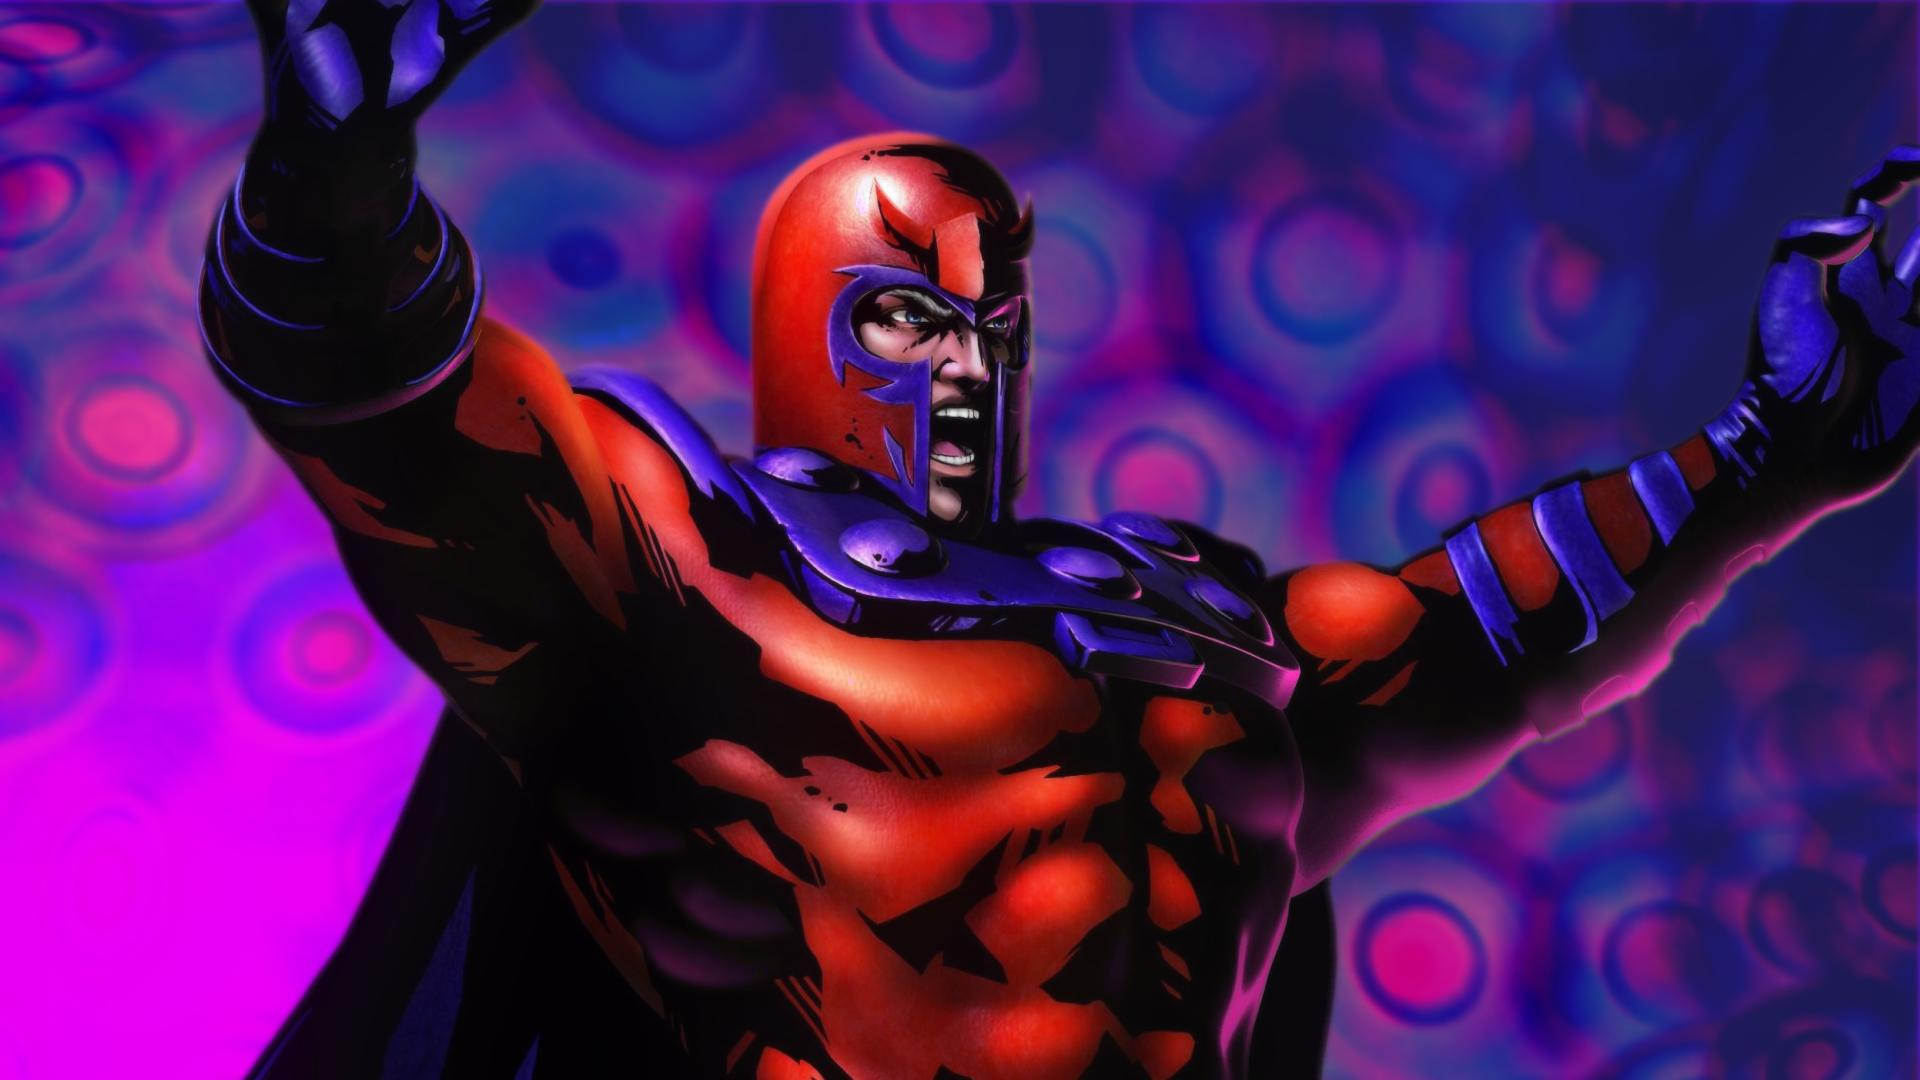 High Res Anime Wallpaper Magneto Wallpapers Wallpaper Cave